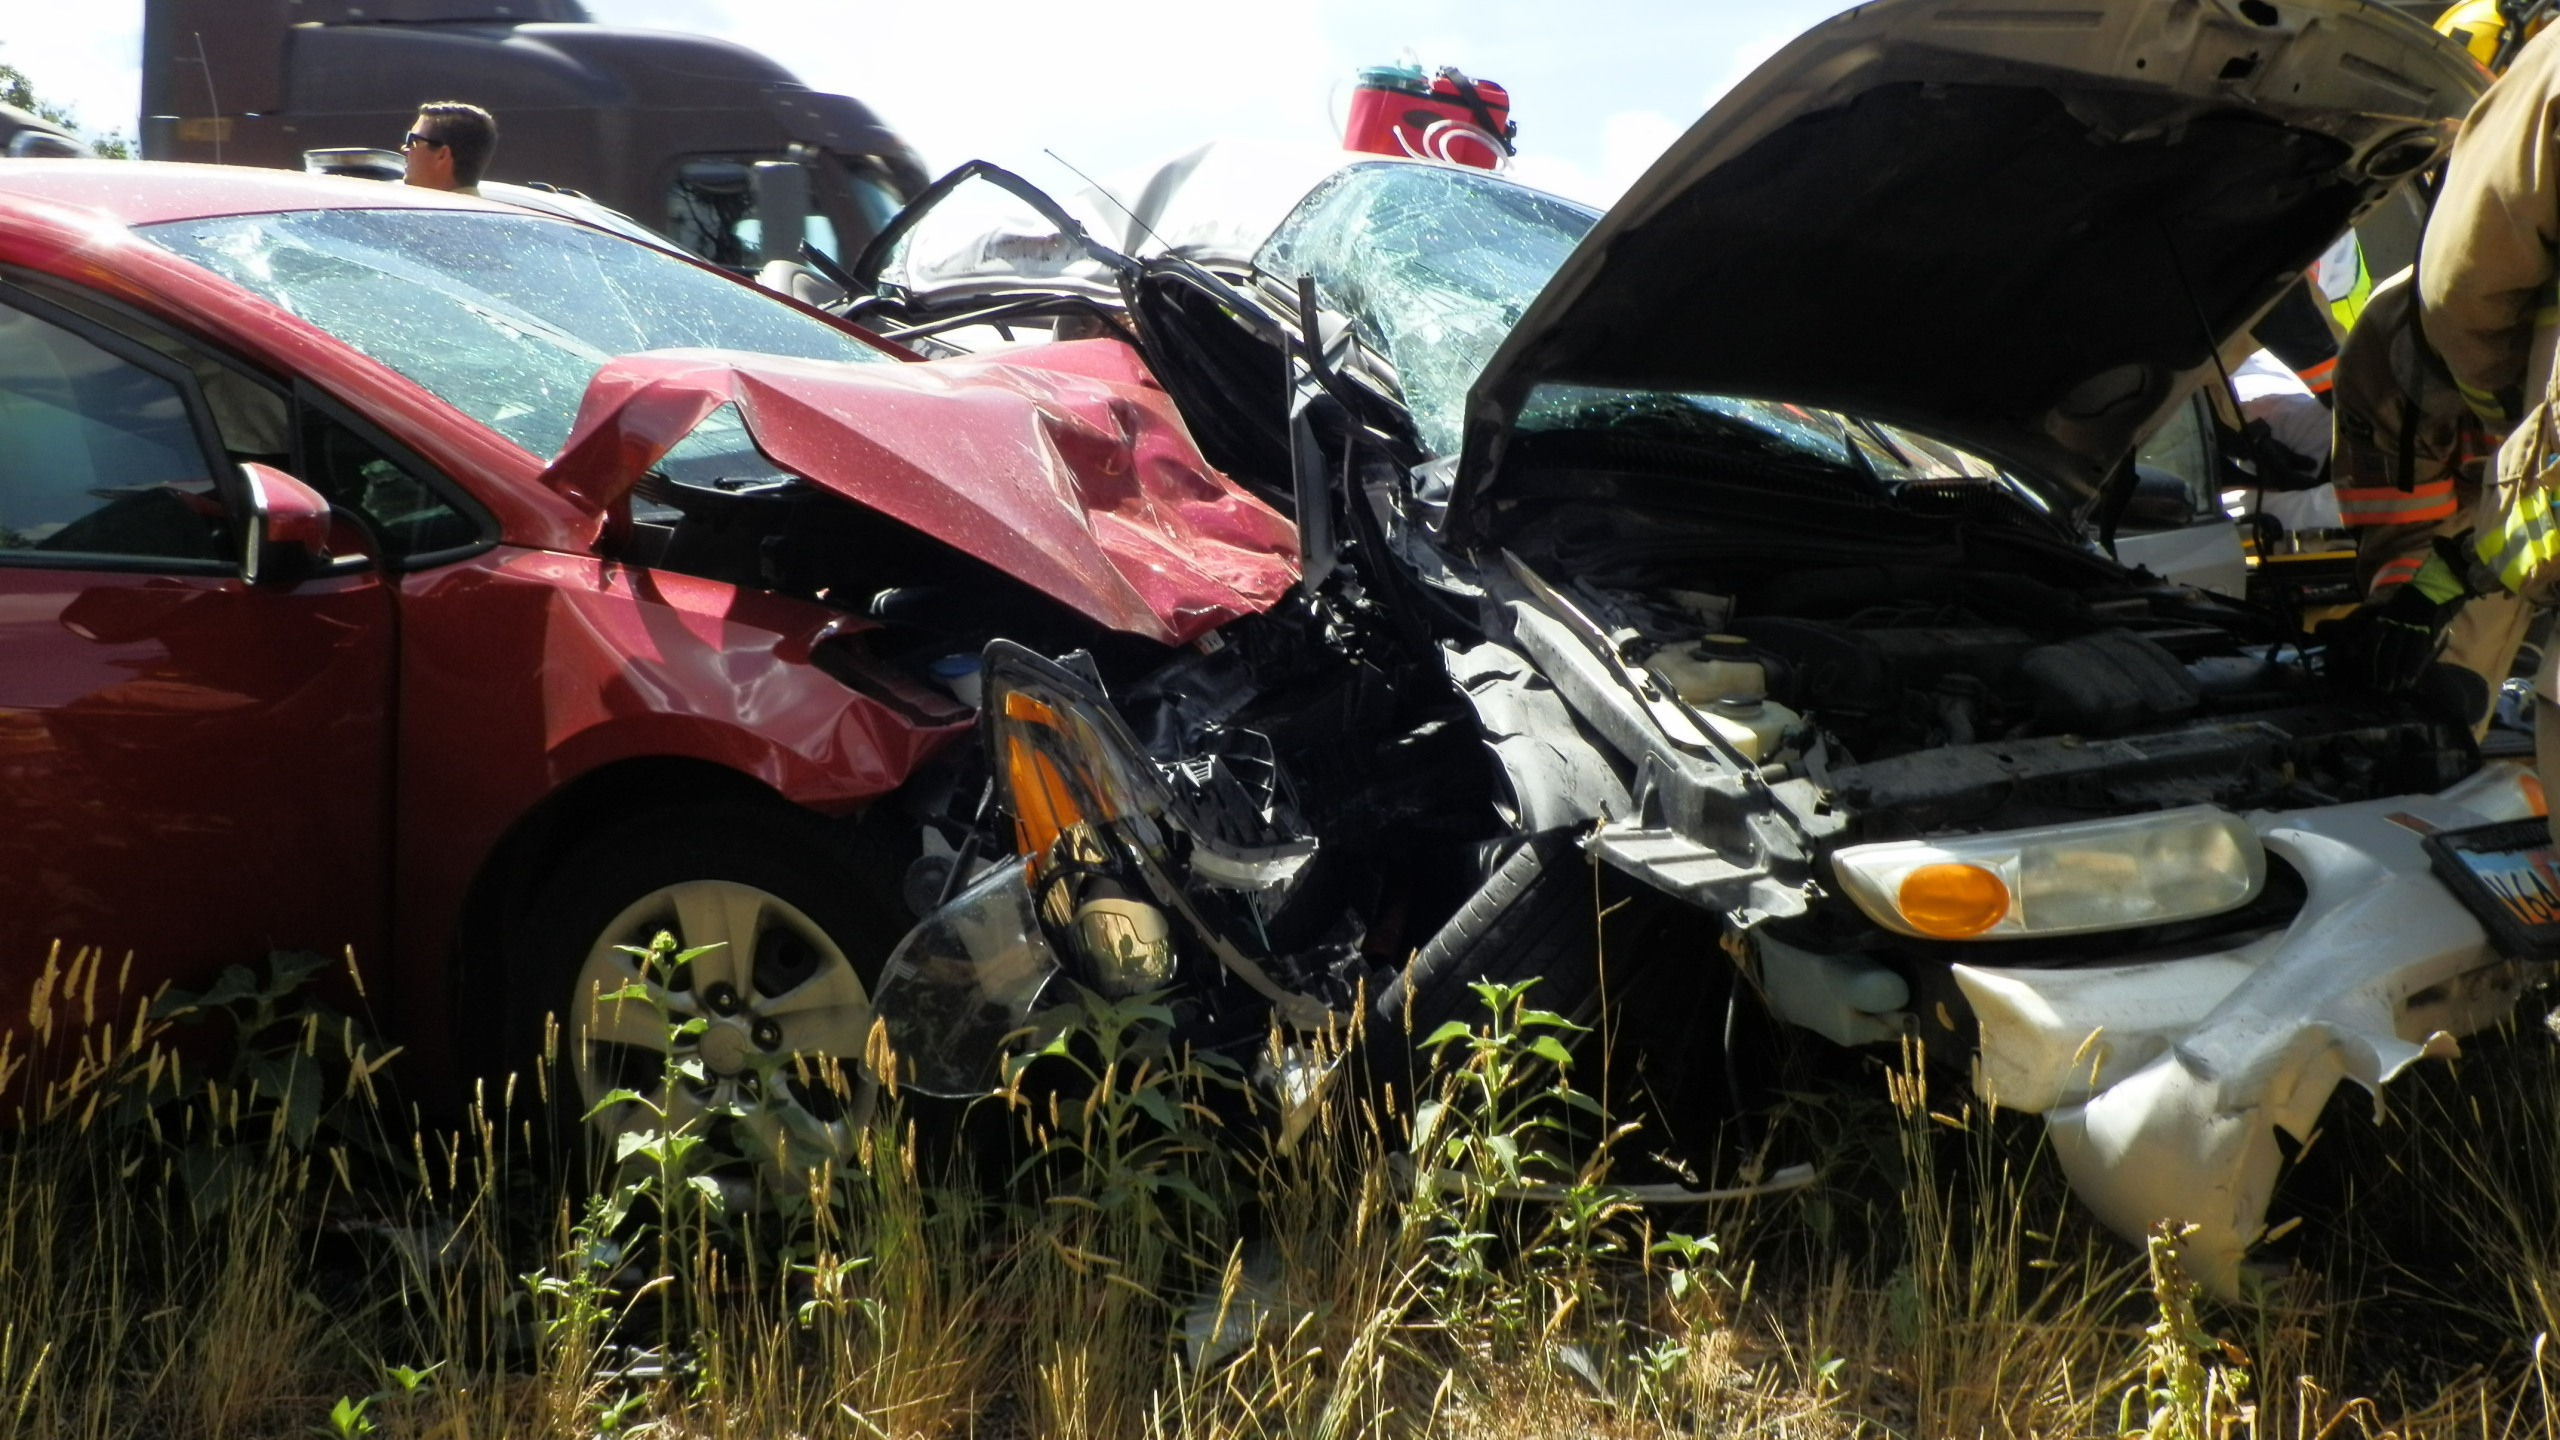 One dead, others injured after crash in Cedar City